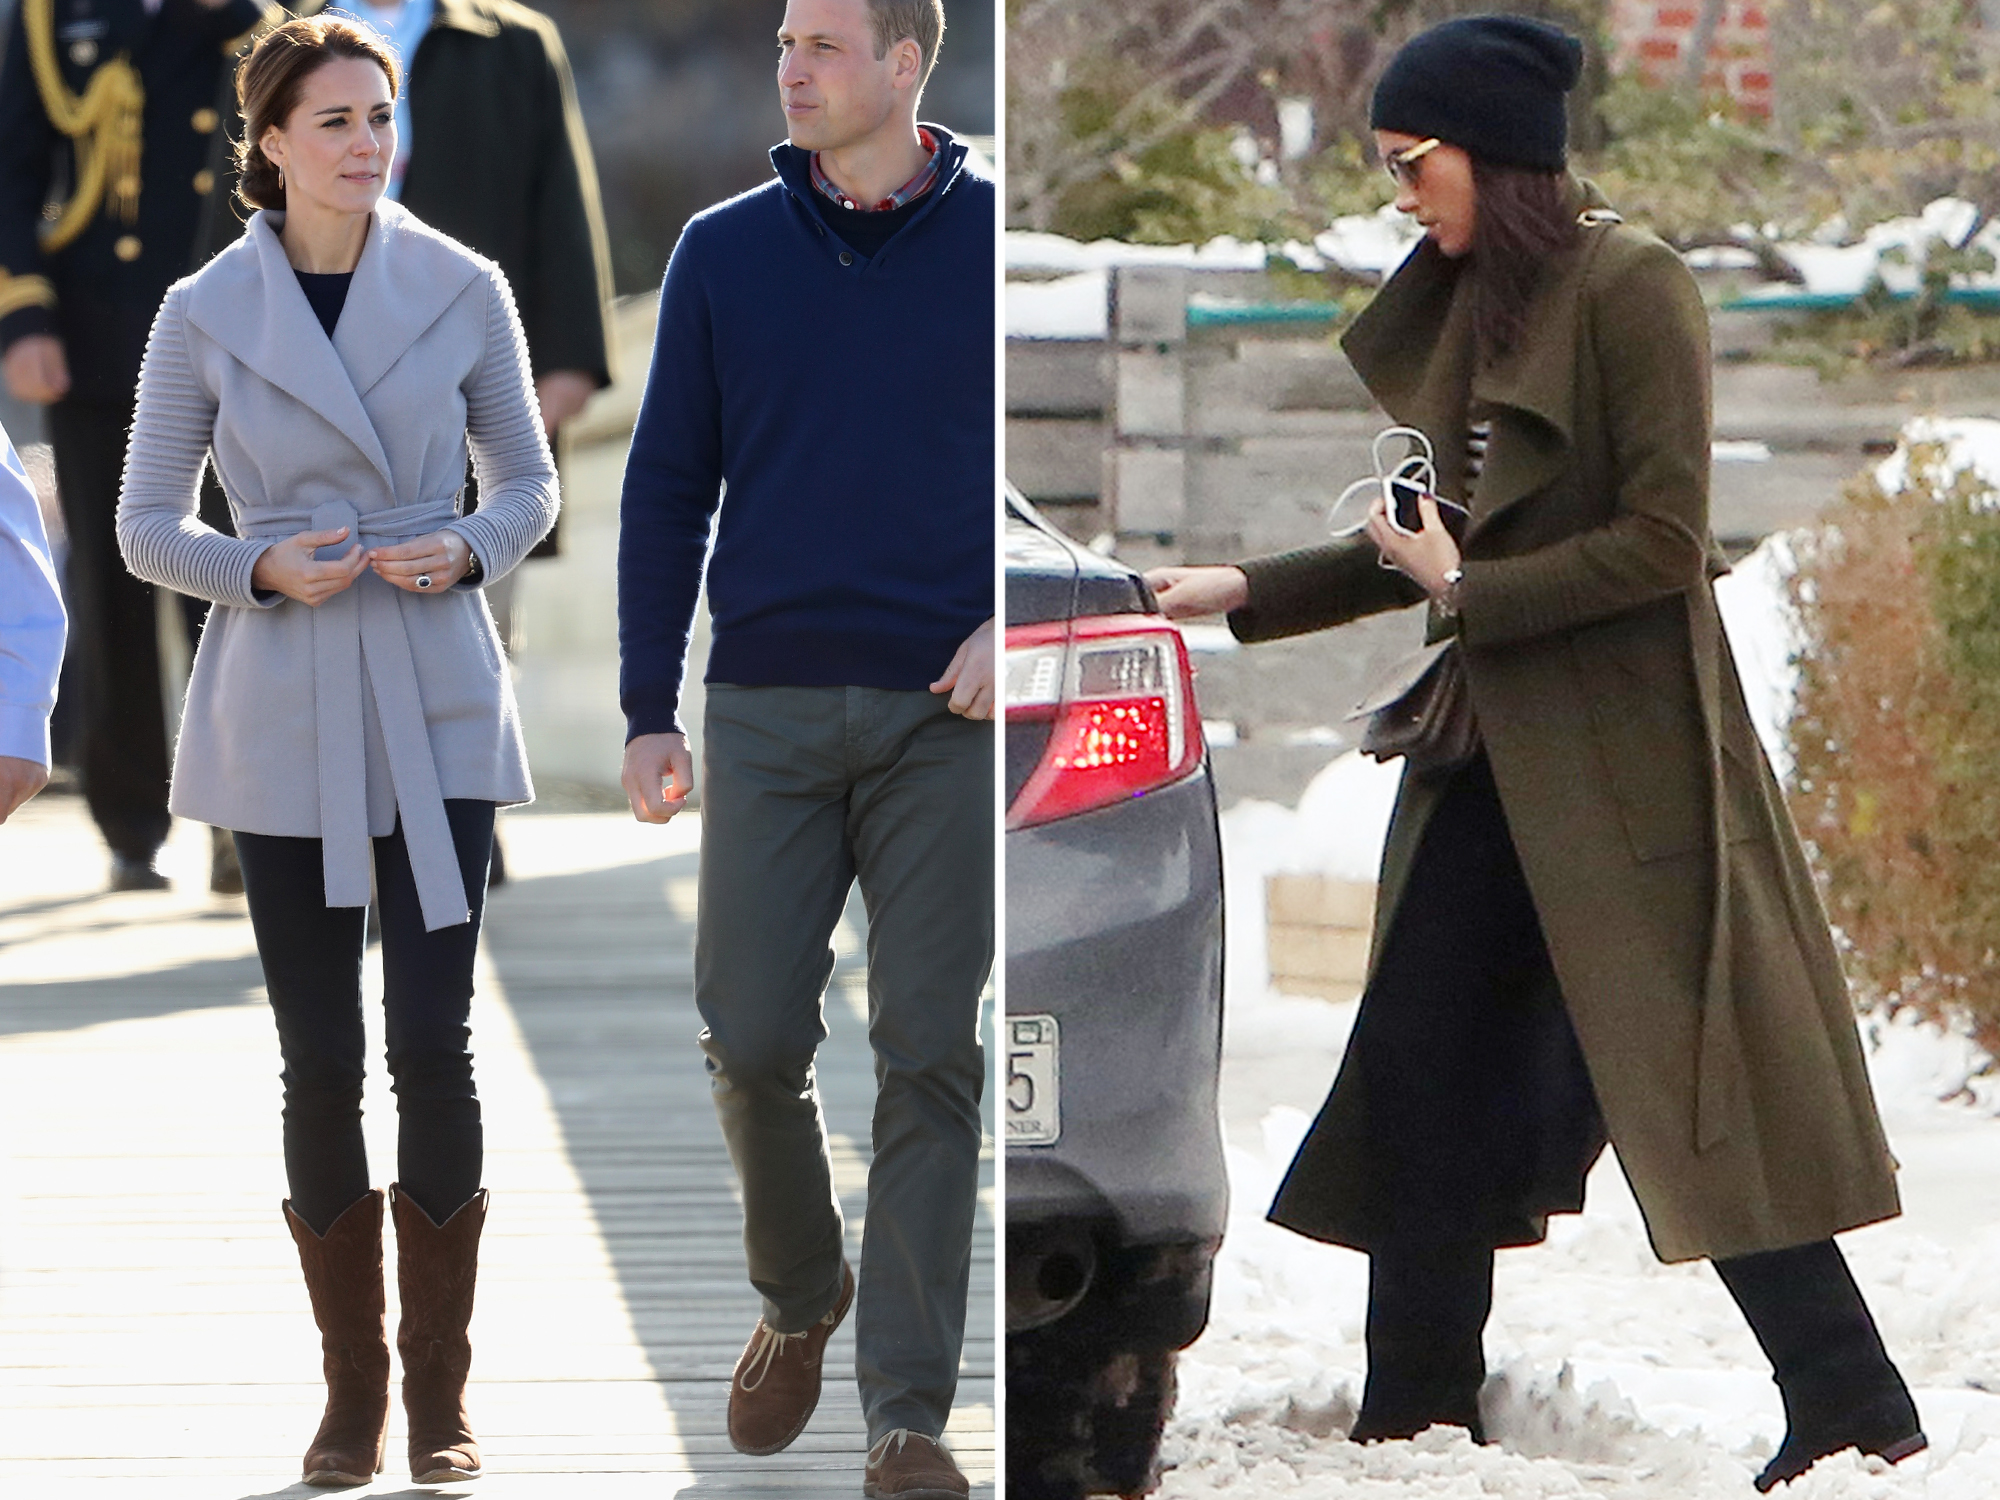 Kate Middleton Wears a Chic Gray Coat to Church with the Queen, as Prince George Goes on His First Grouse Shoot